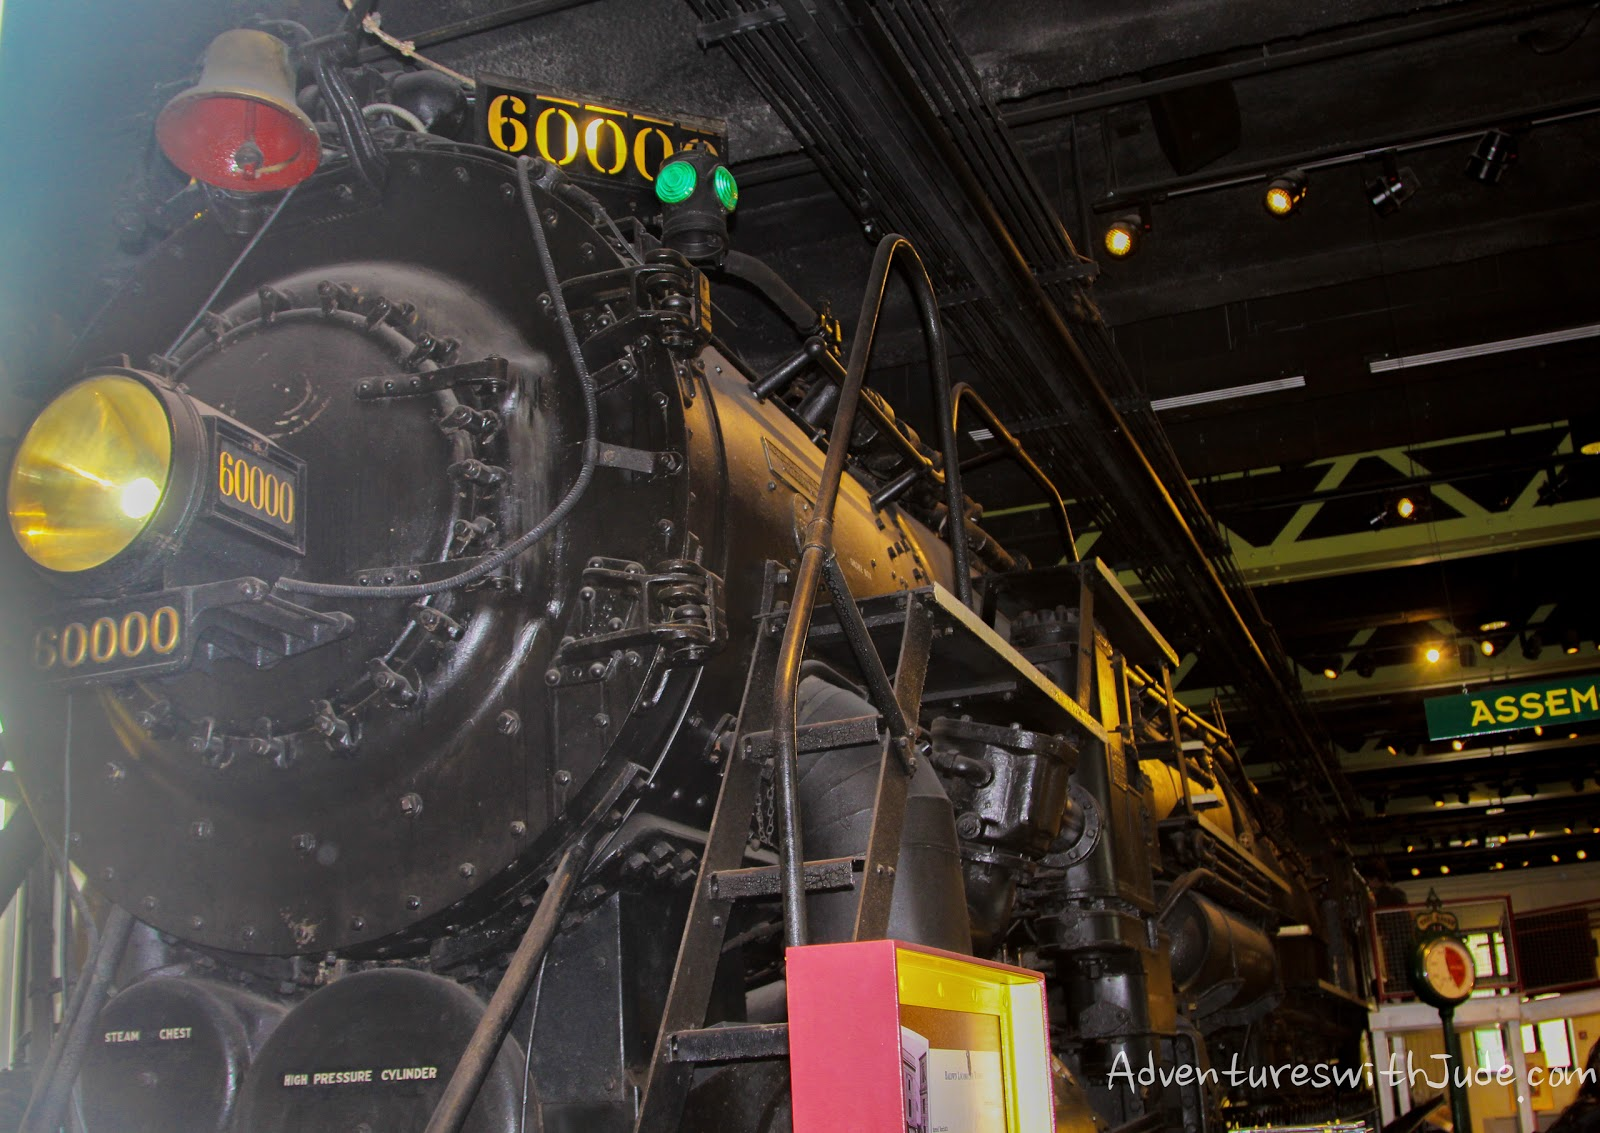 Baldwin Locomotive 60000